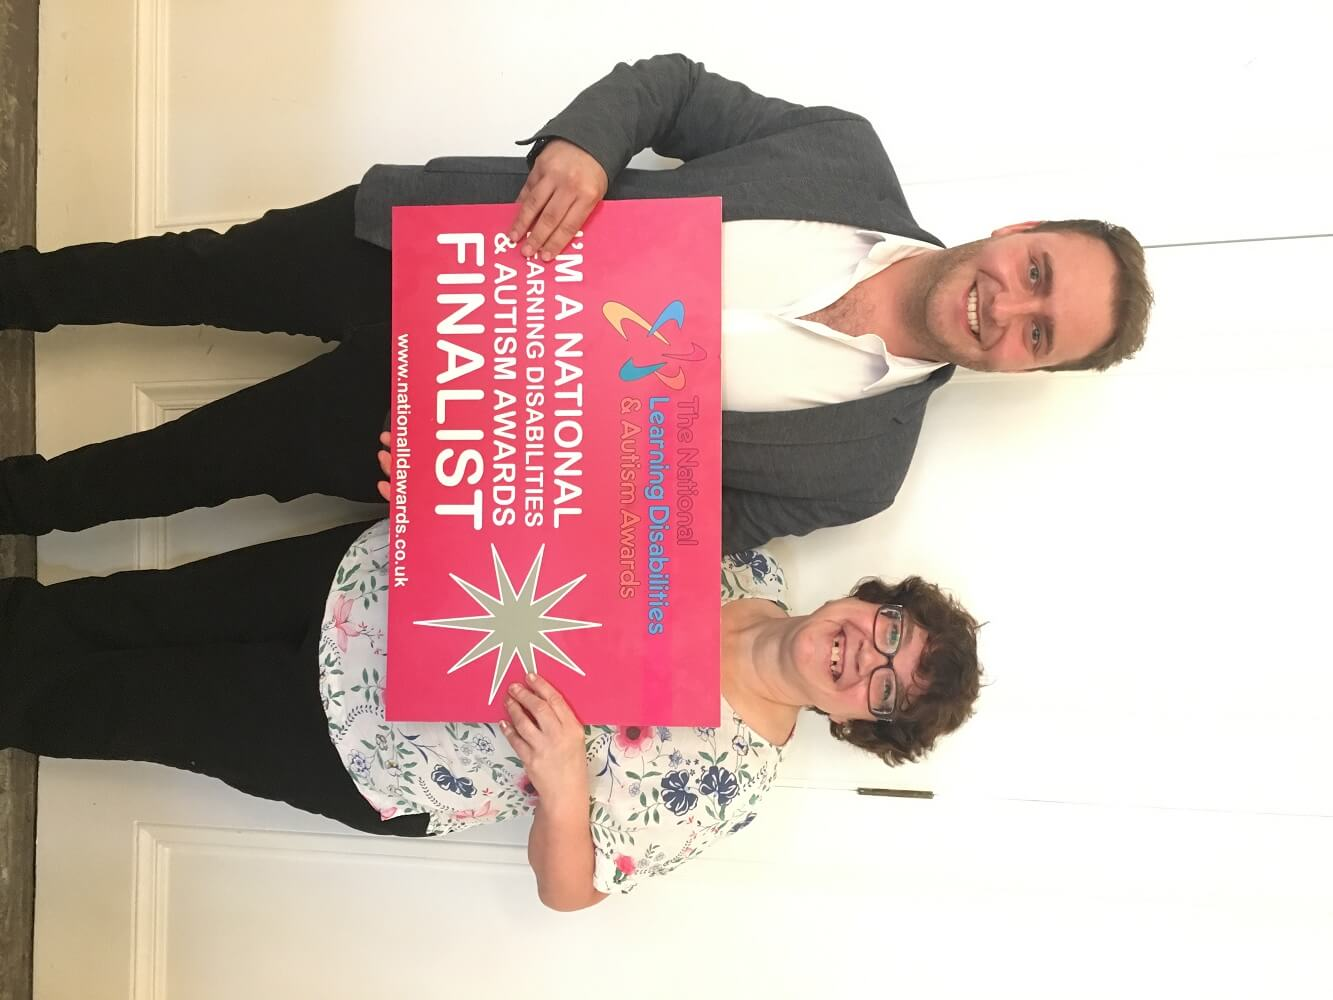 Danshell recognised for autism support